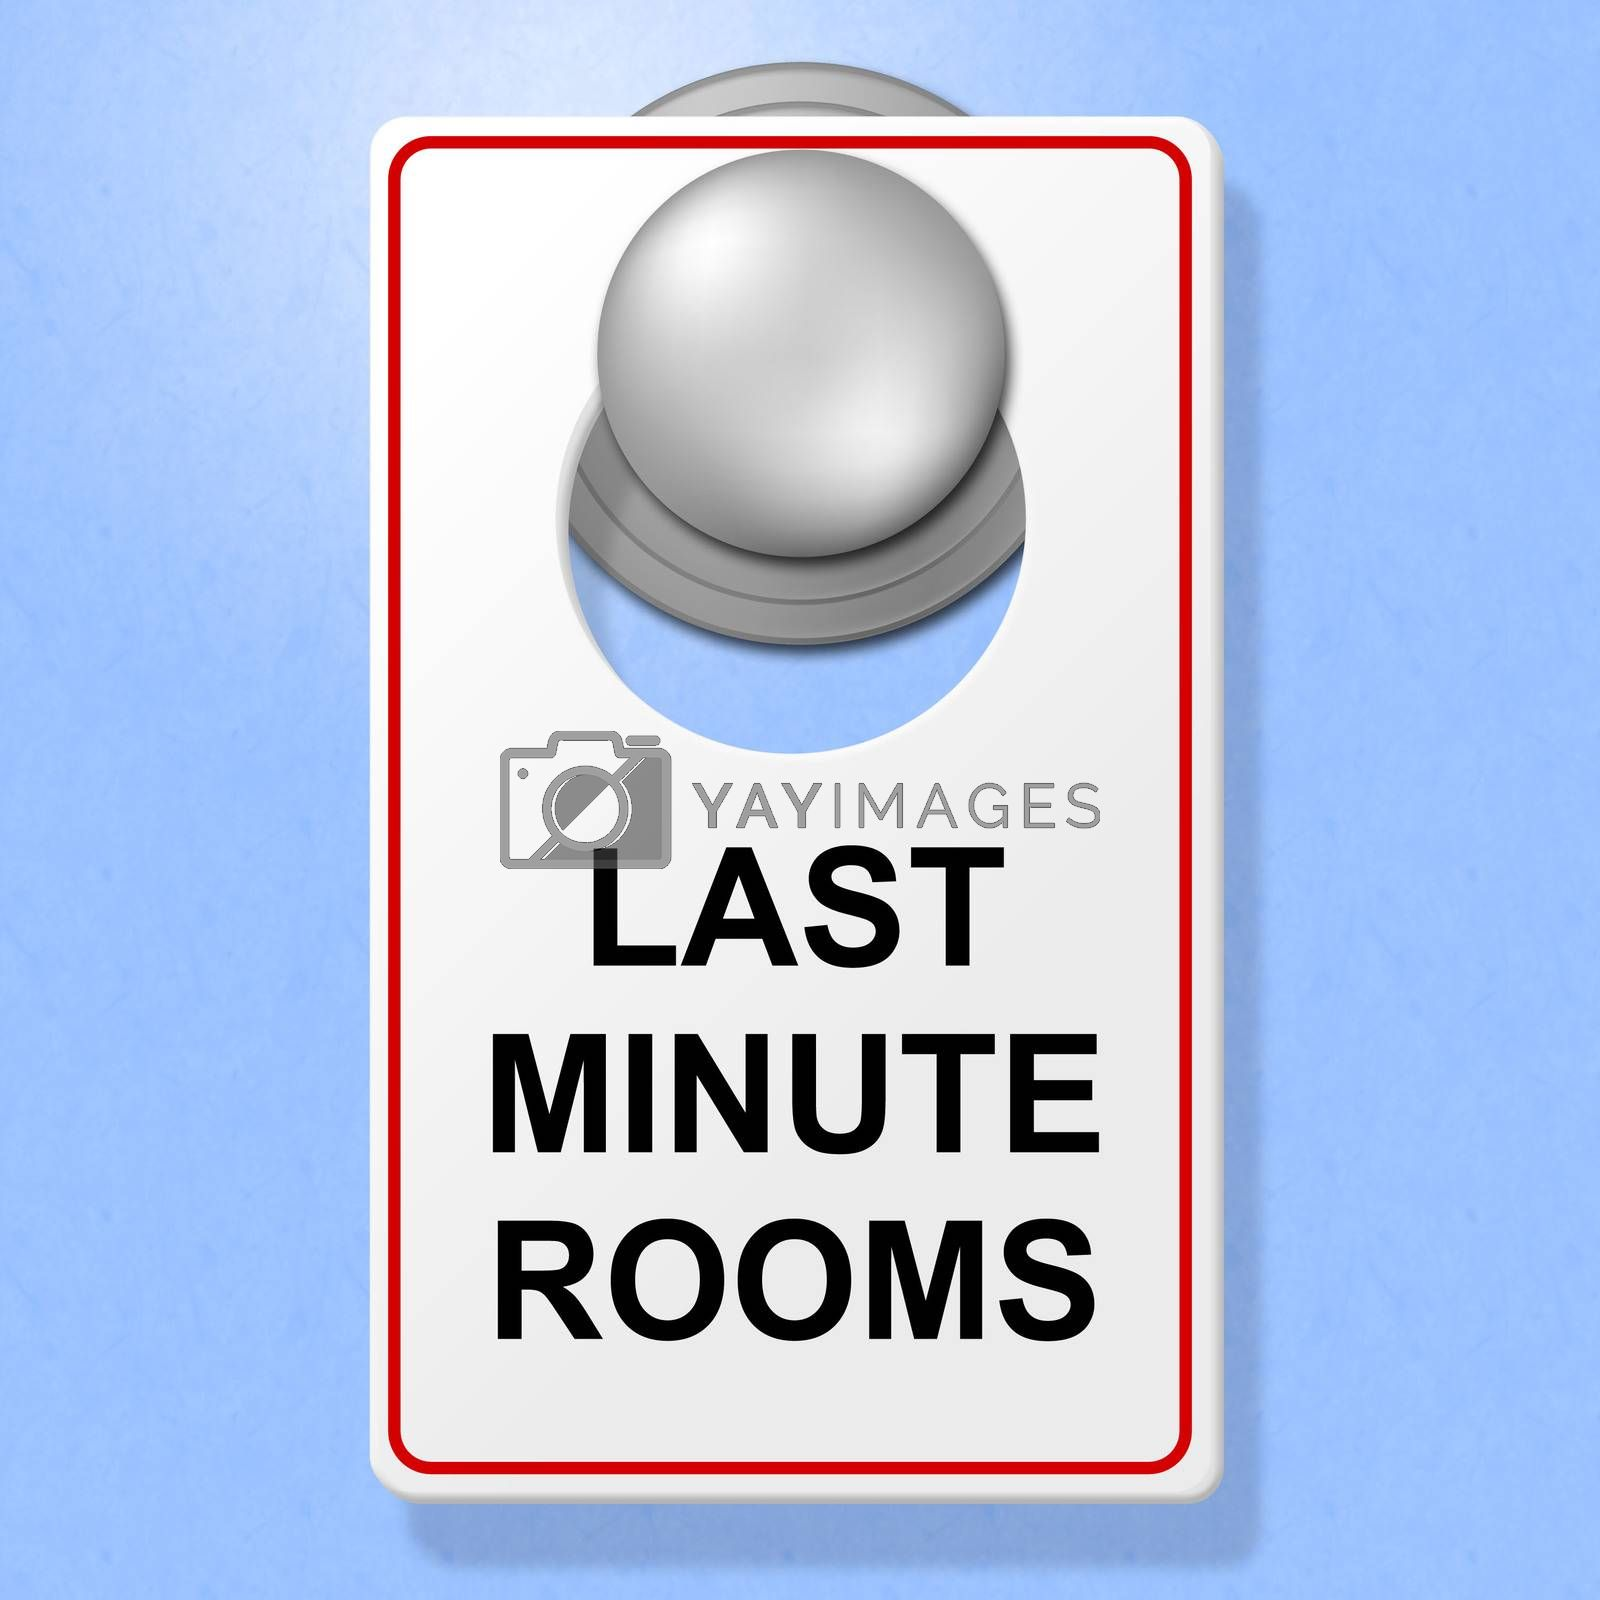 Last Minute Rooms Represents Place To Stay And Hotel by stuartmiles